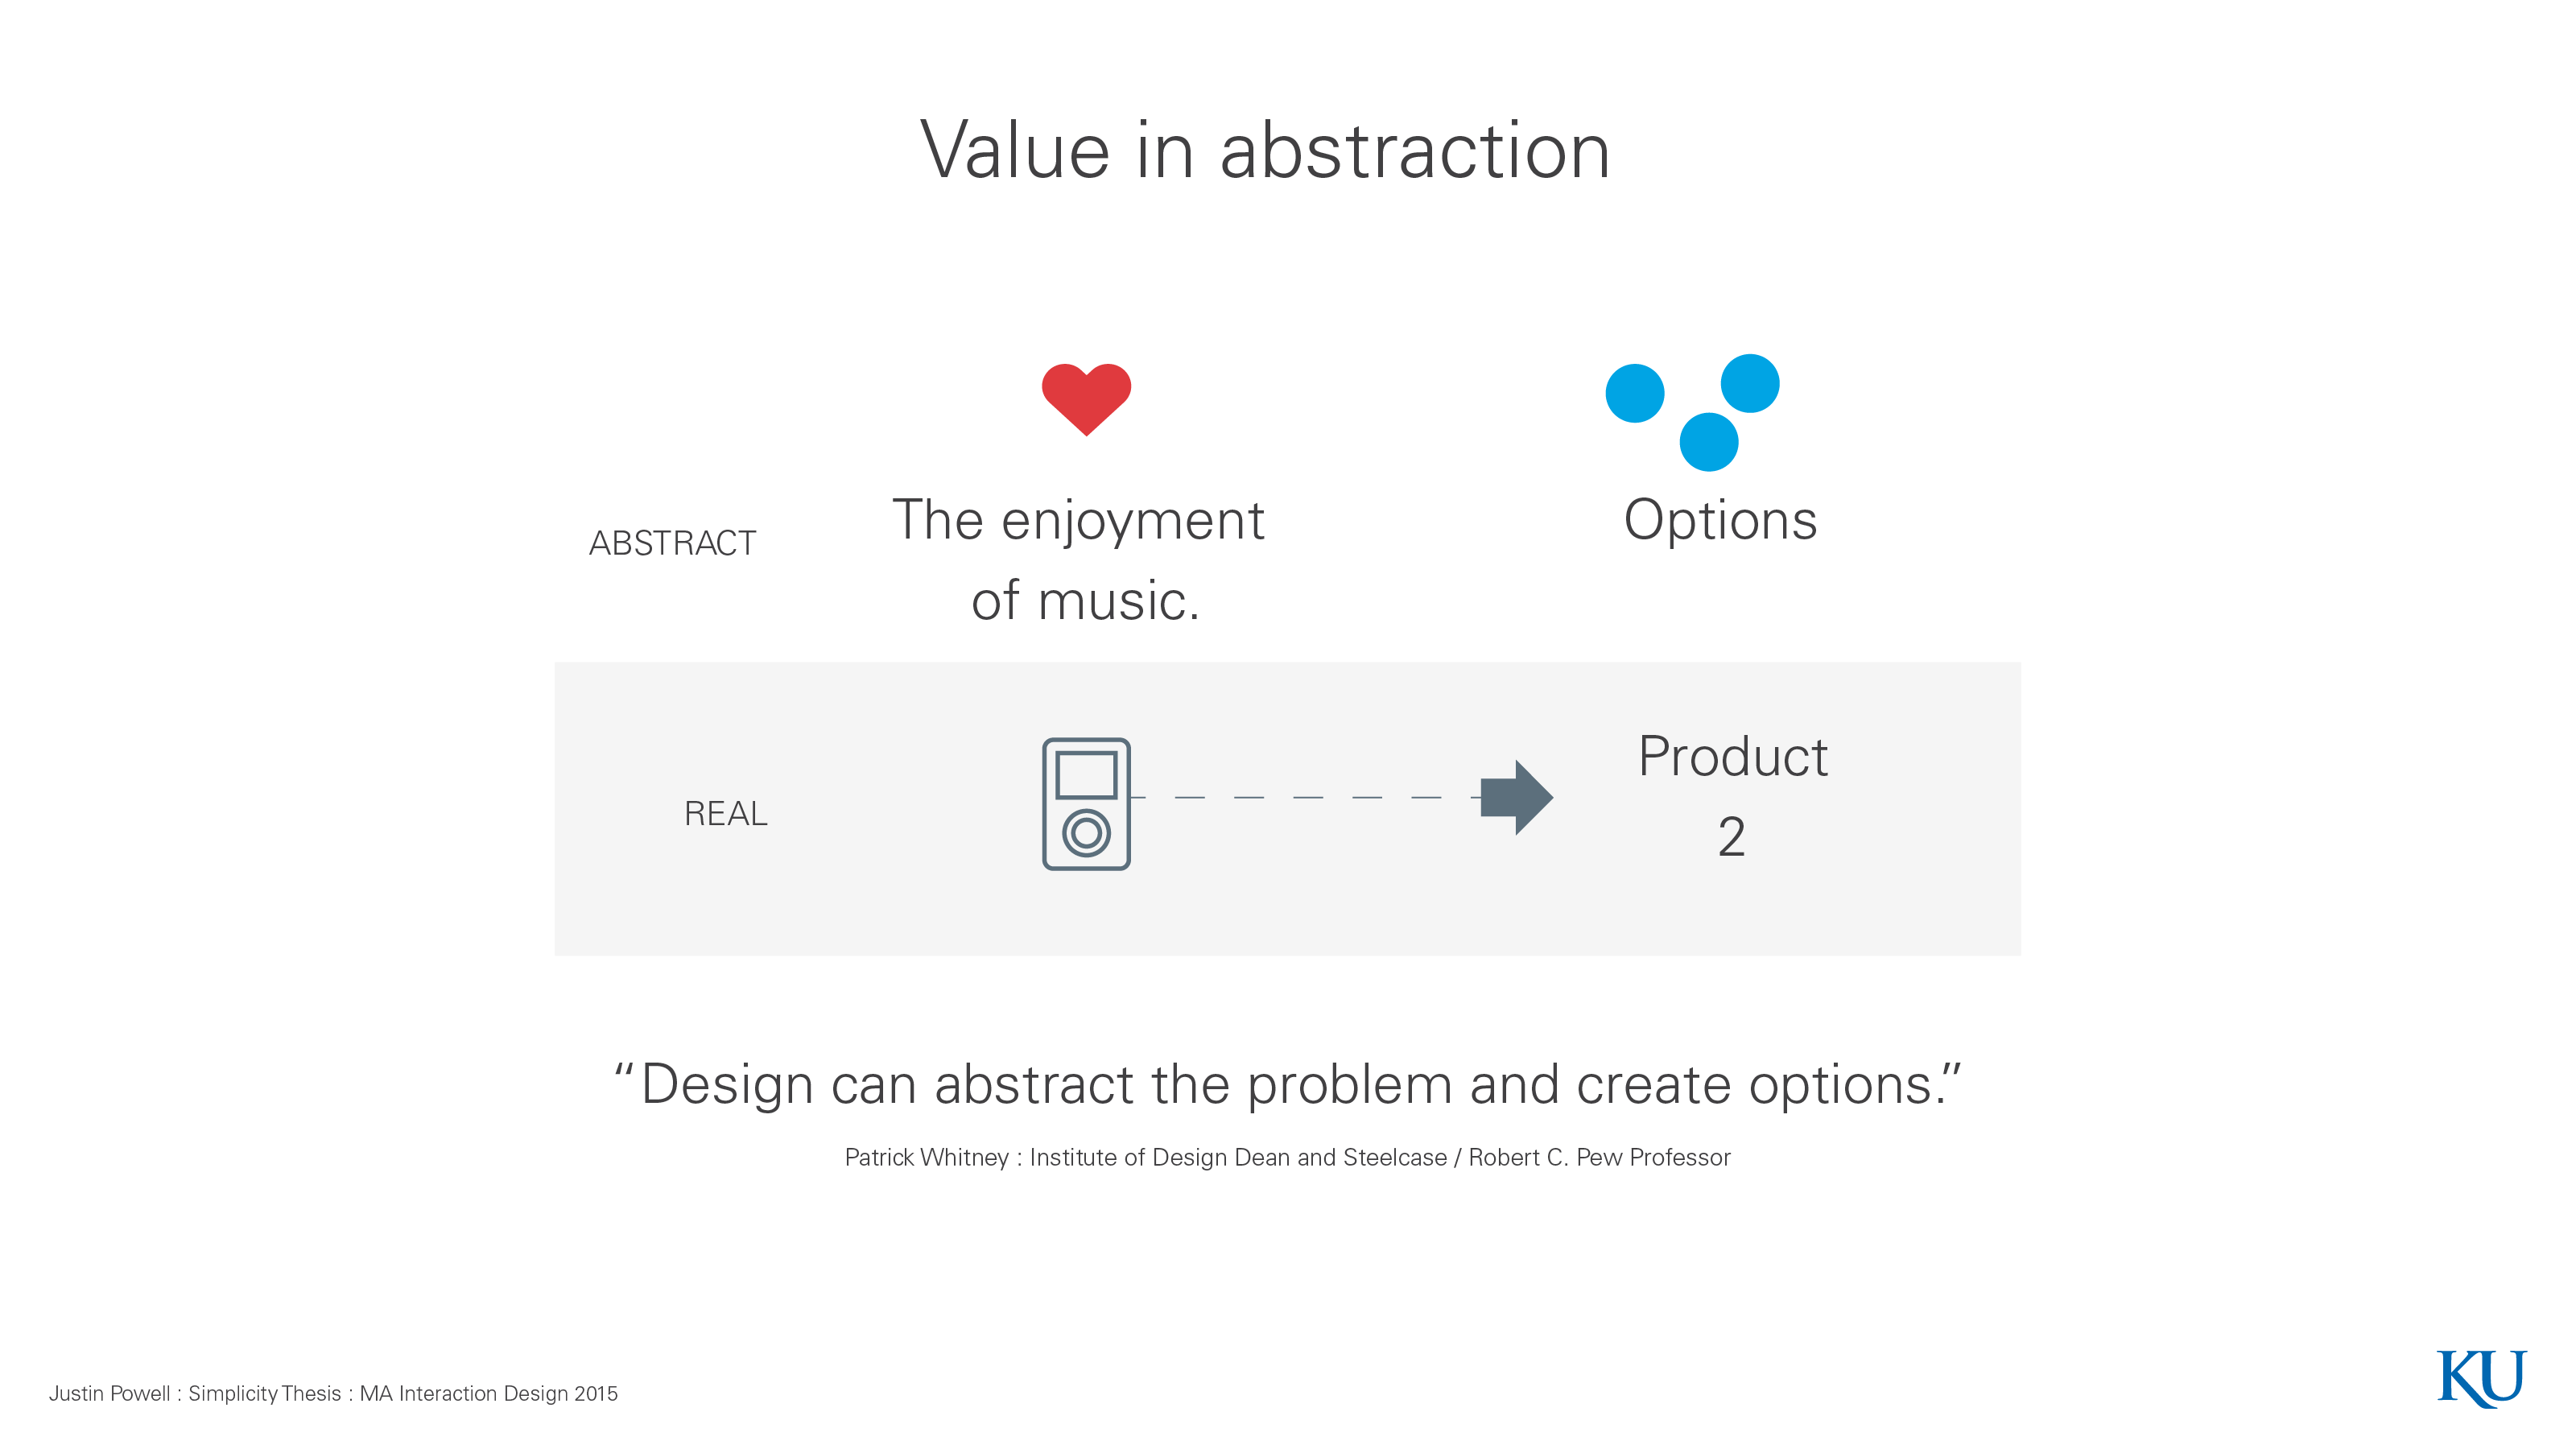 Abstraction for Innovation